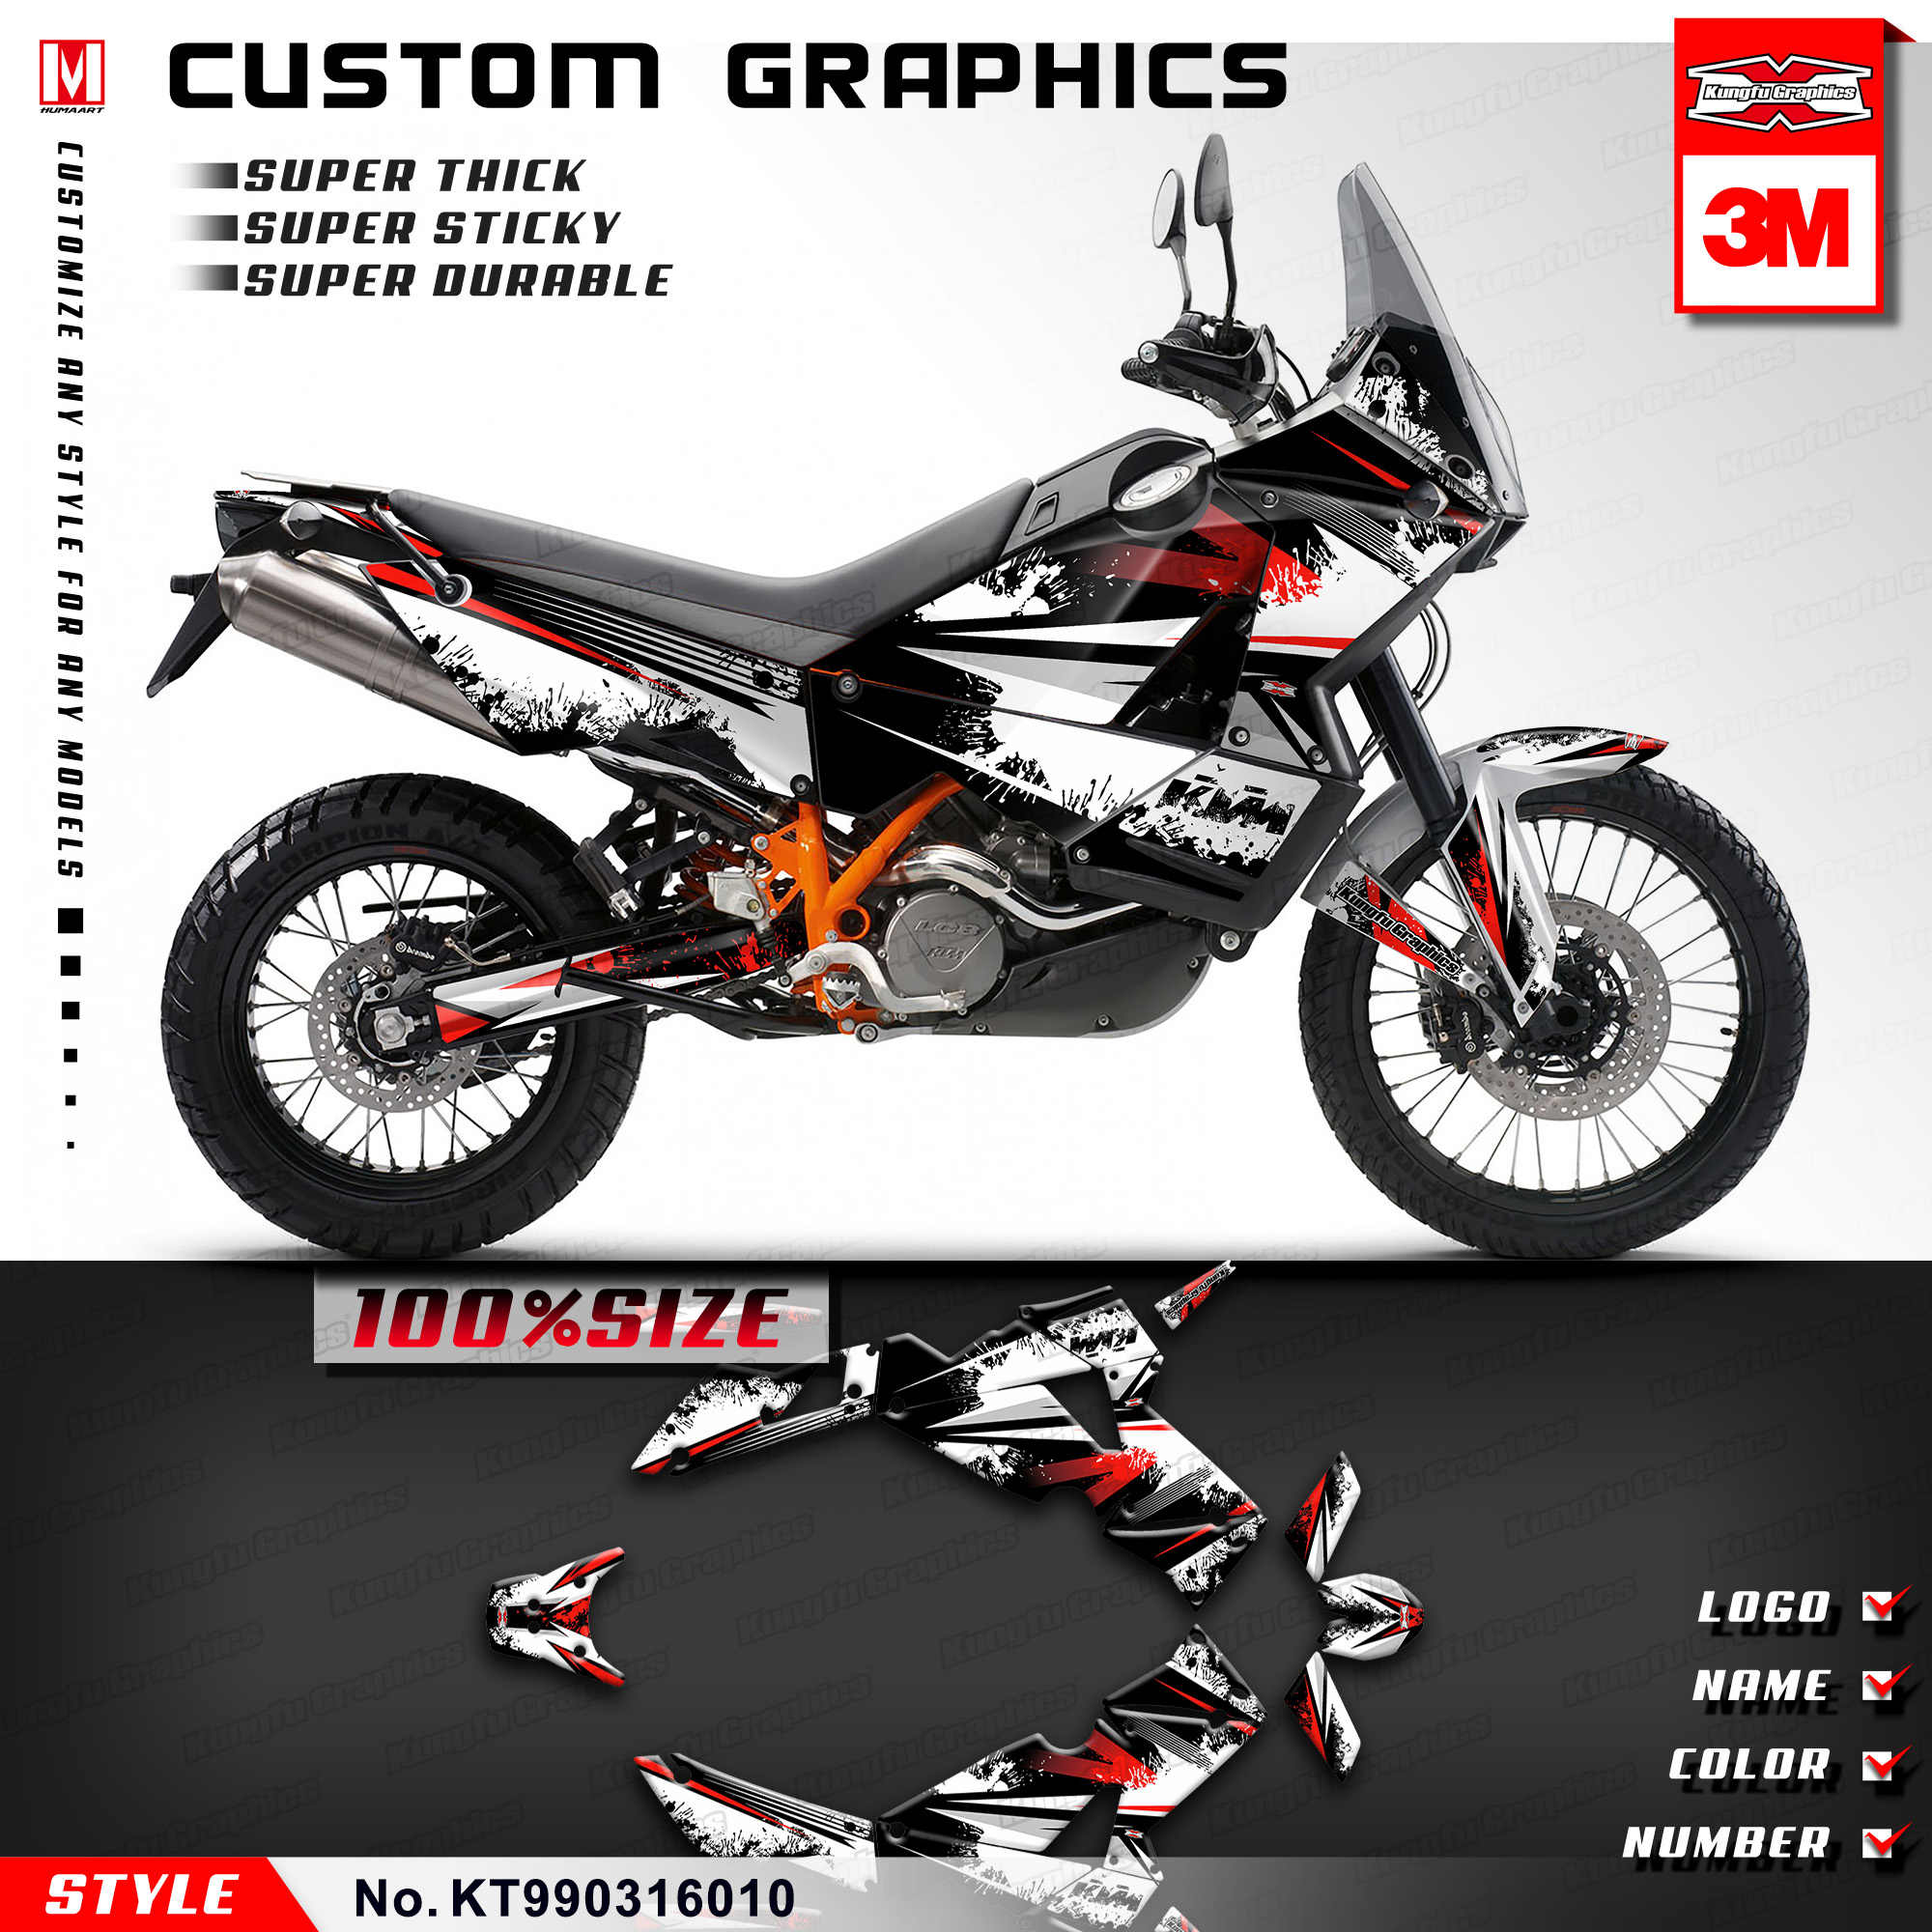 KUNGFU GRAPHICS Vehicle Wraps Dekor Kit Stickers Black White for KTM 950  990 Adventure ADV 2003 to 2016 (Style no  KT990316010)